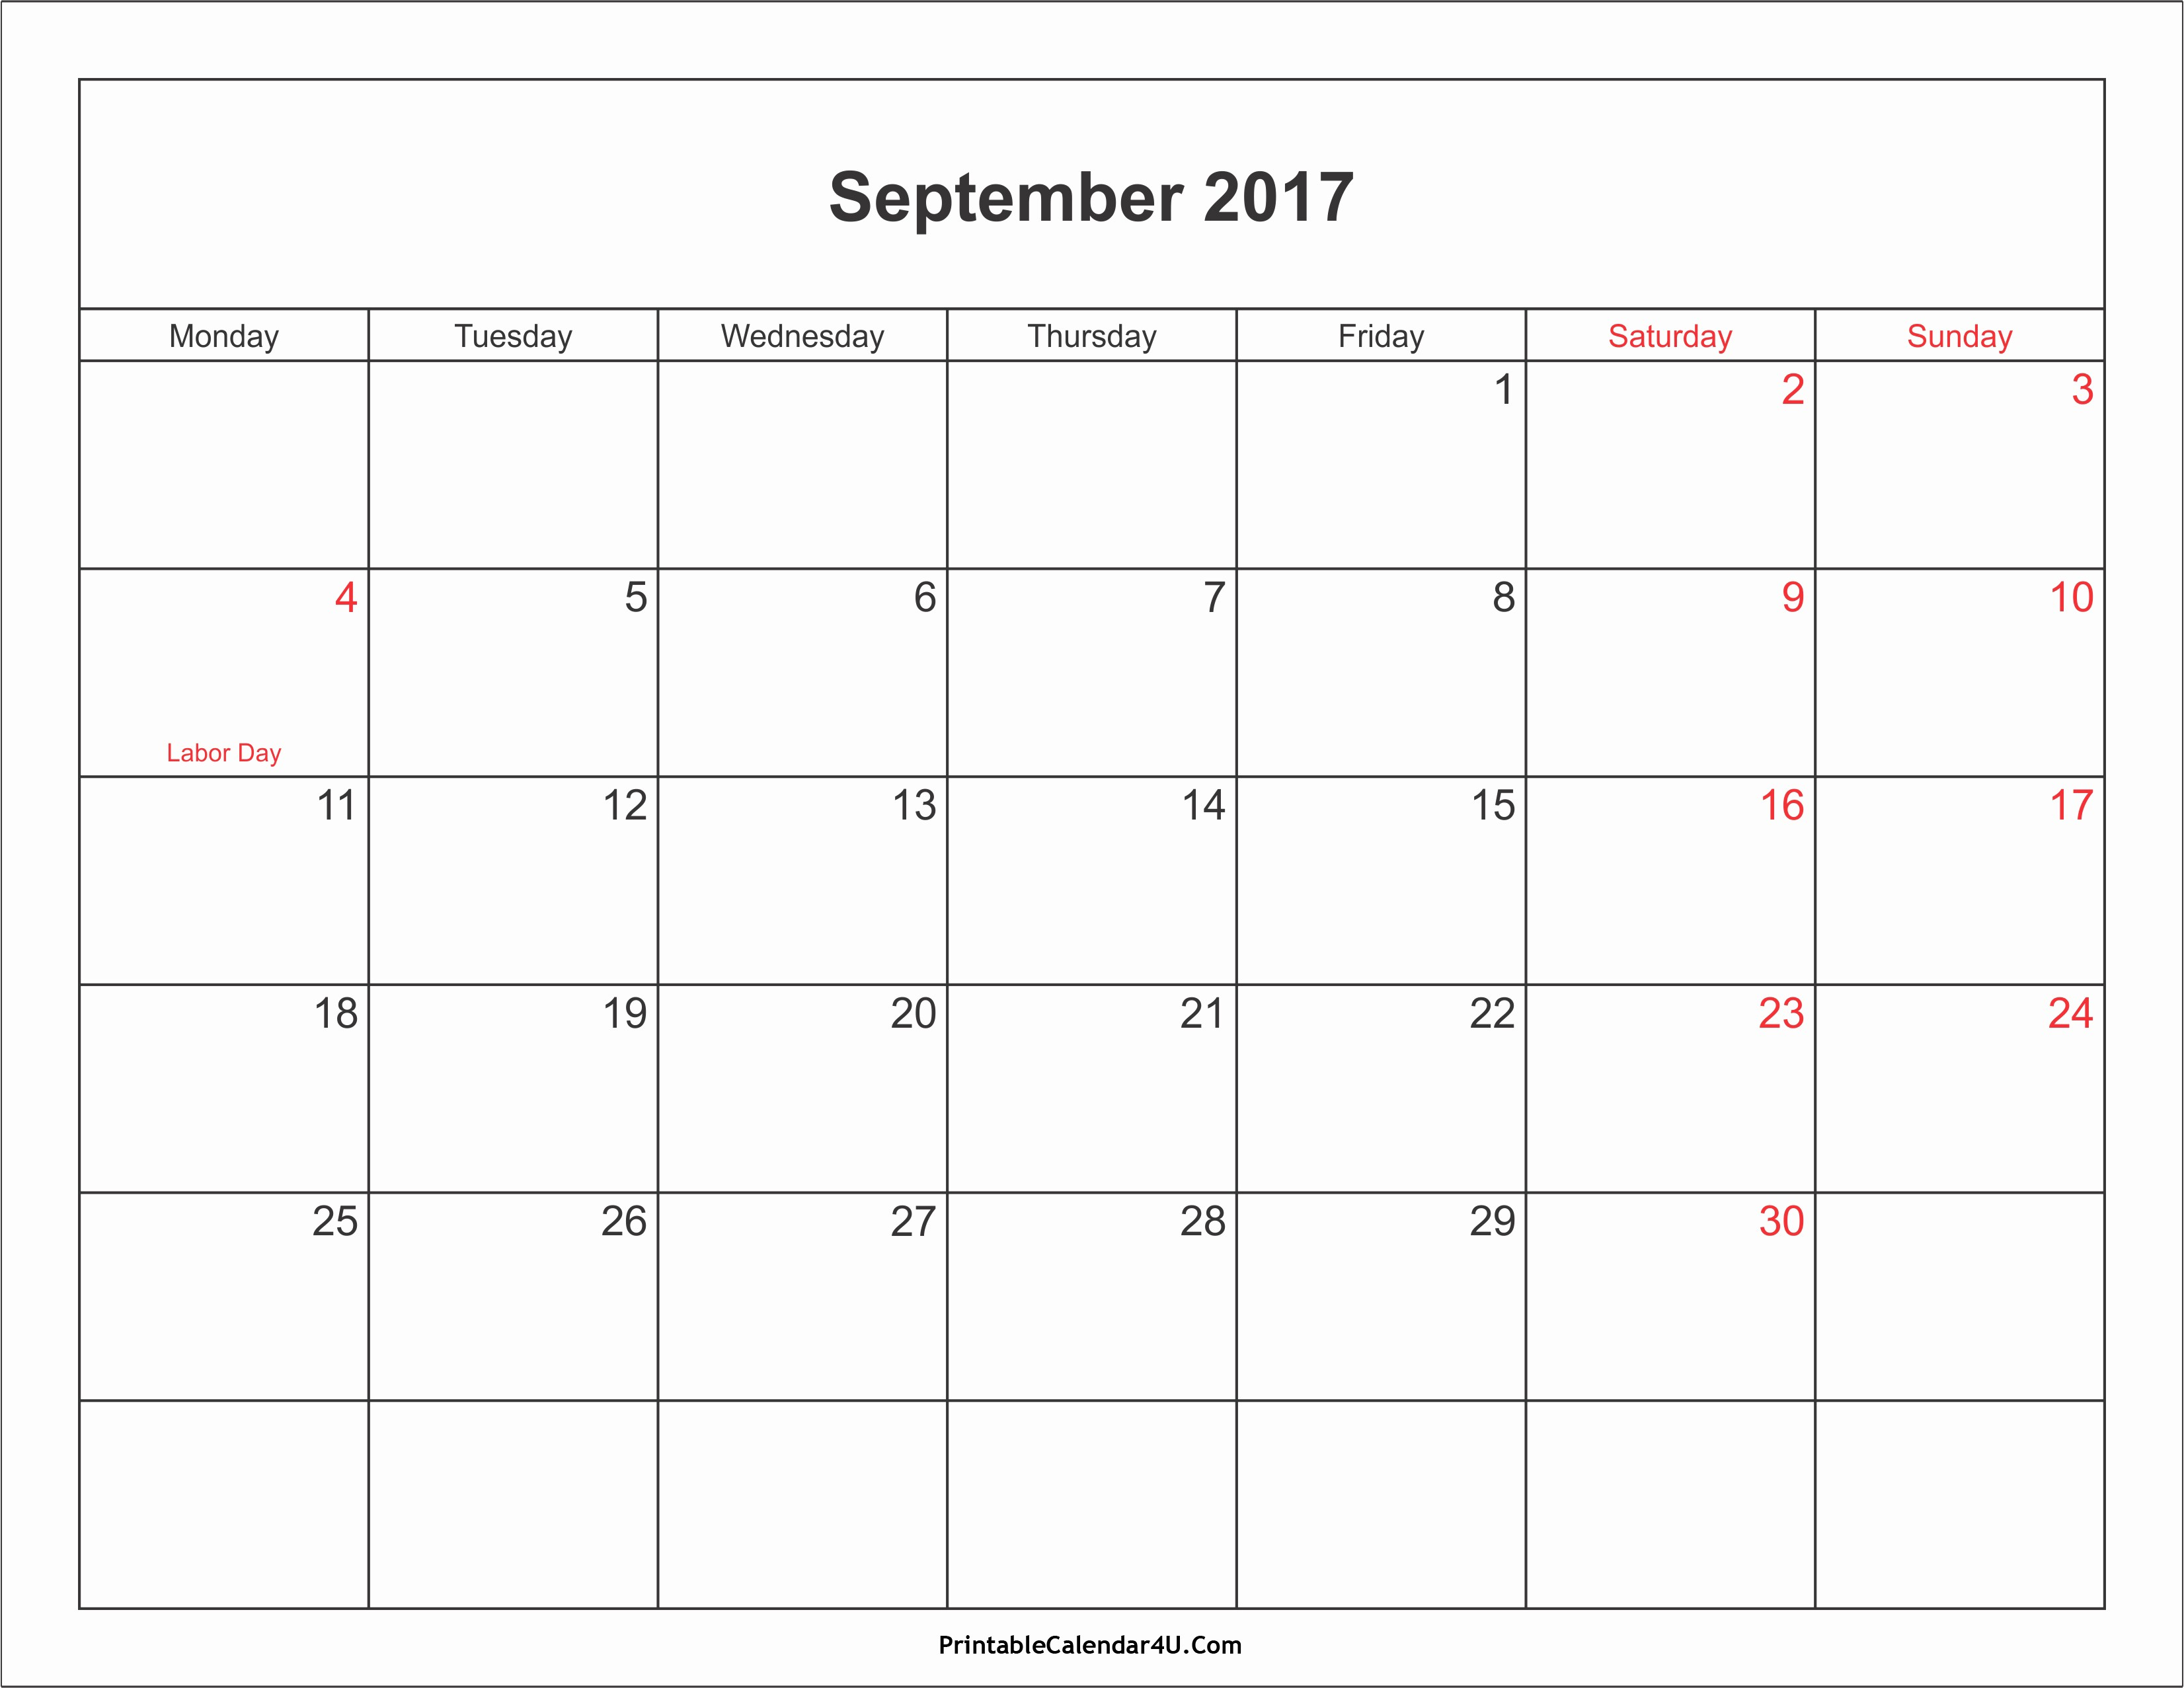 September 2017 Printable Calendar Word New September 2017 Calendar Pdf